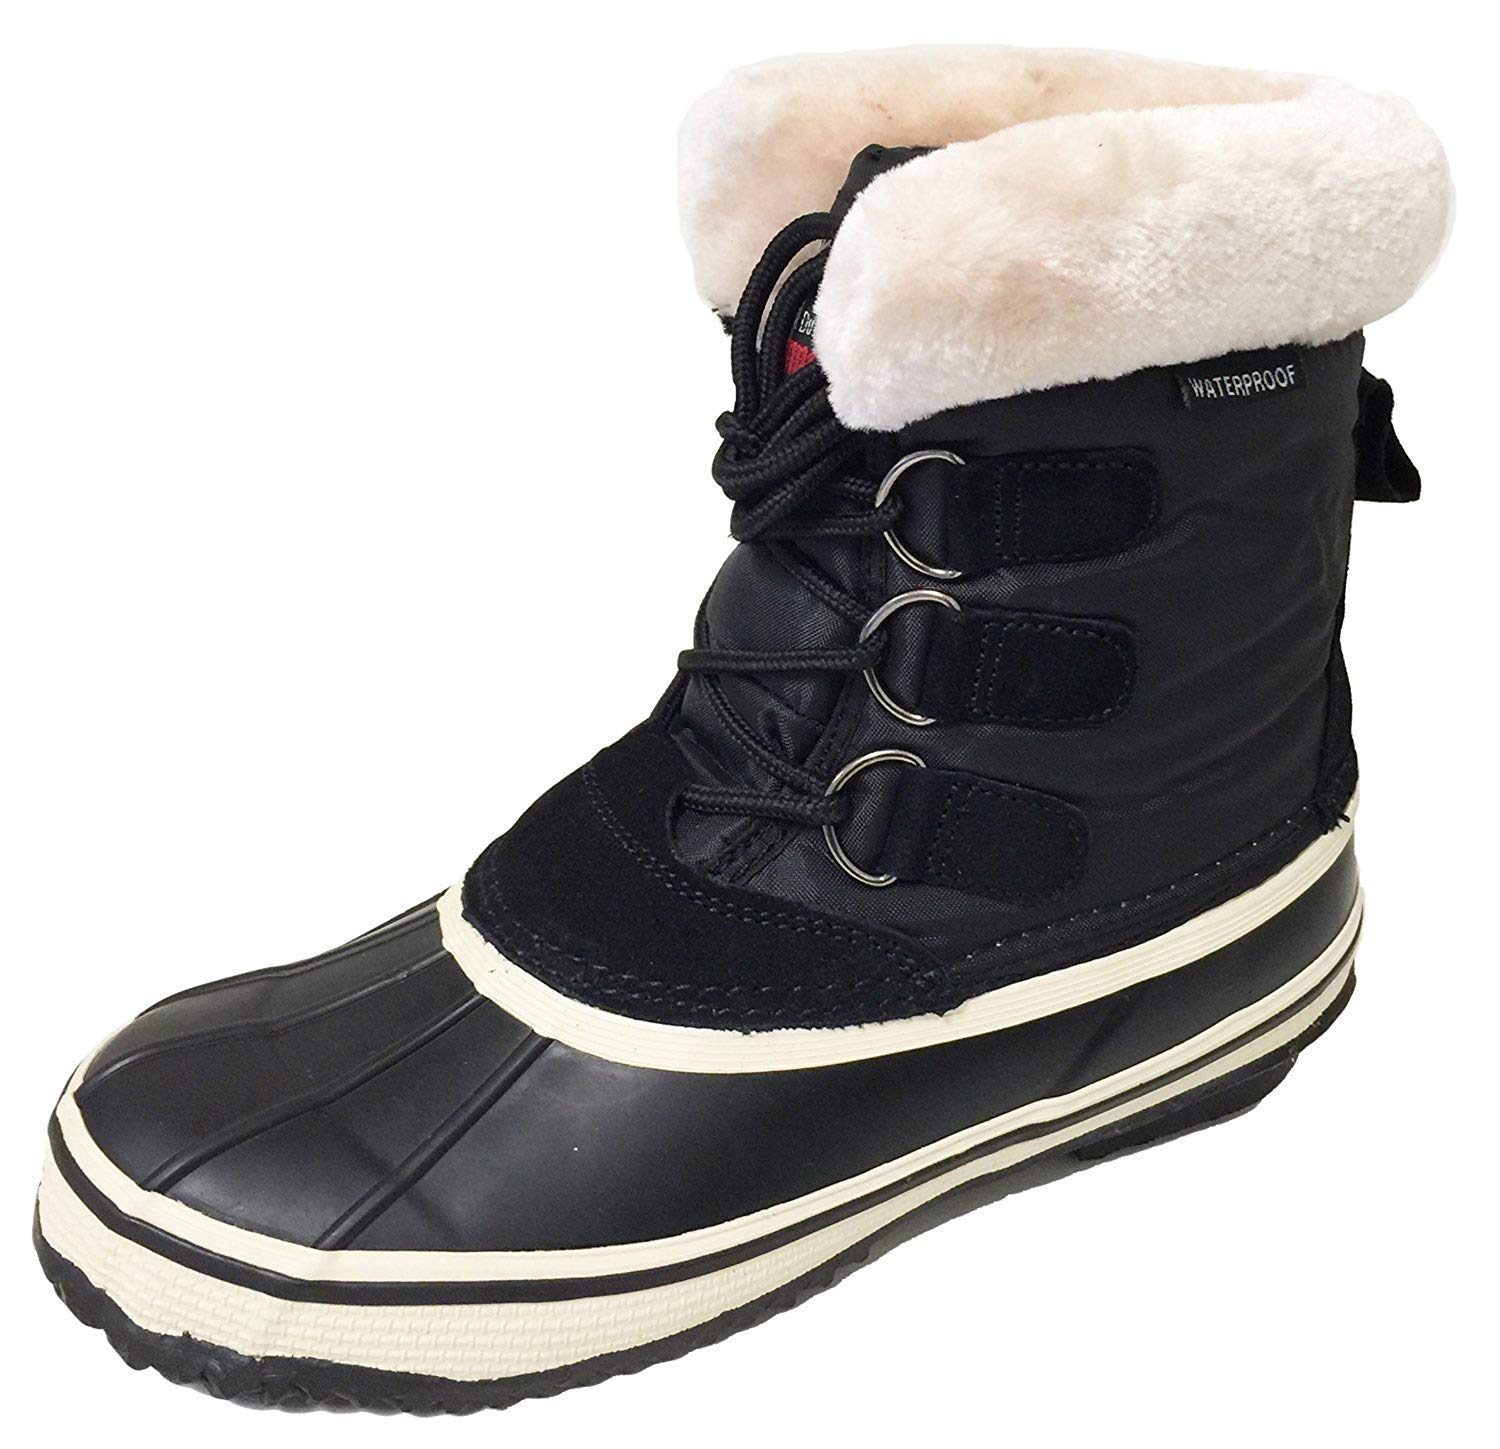 6bab607e4142a G-S22B Women's Winter Boots Cold Weather Shearling Fashion Insulated ...